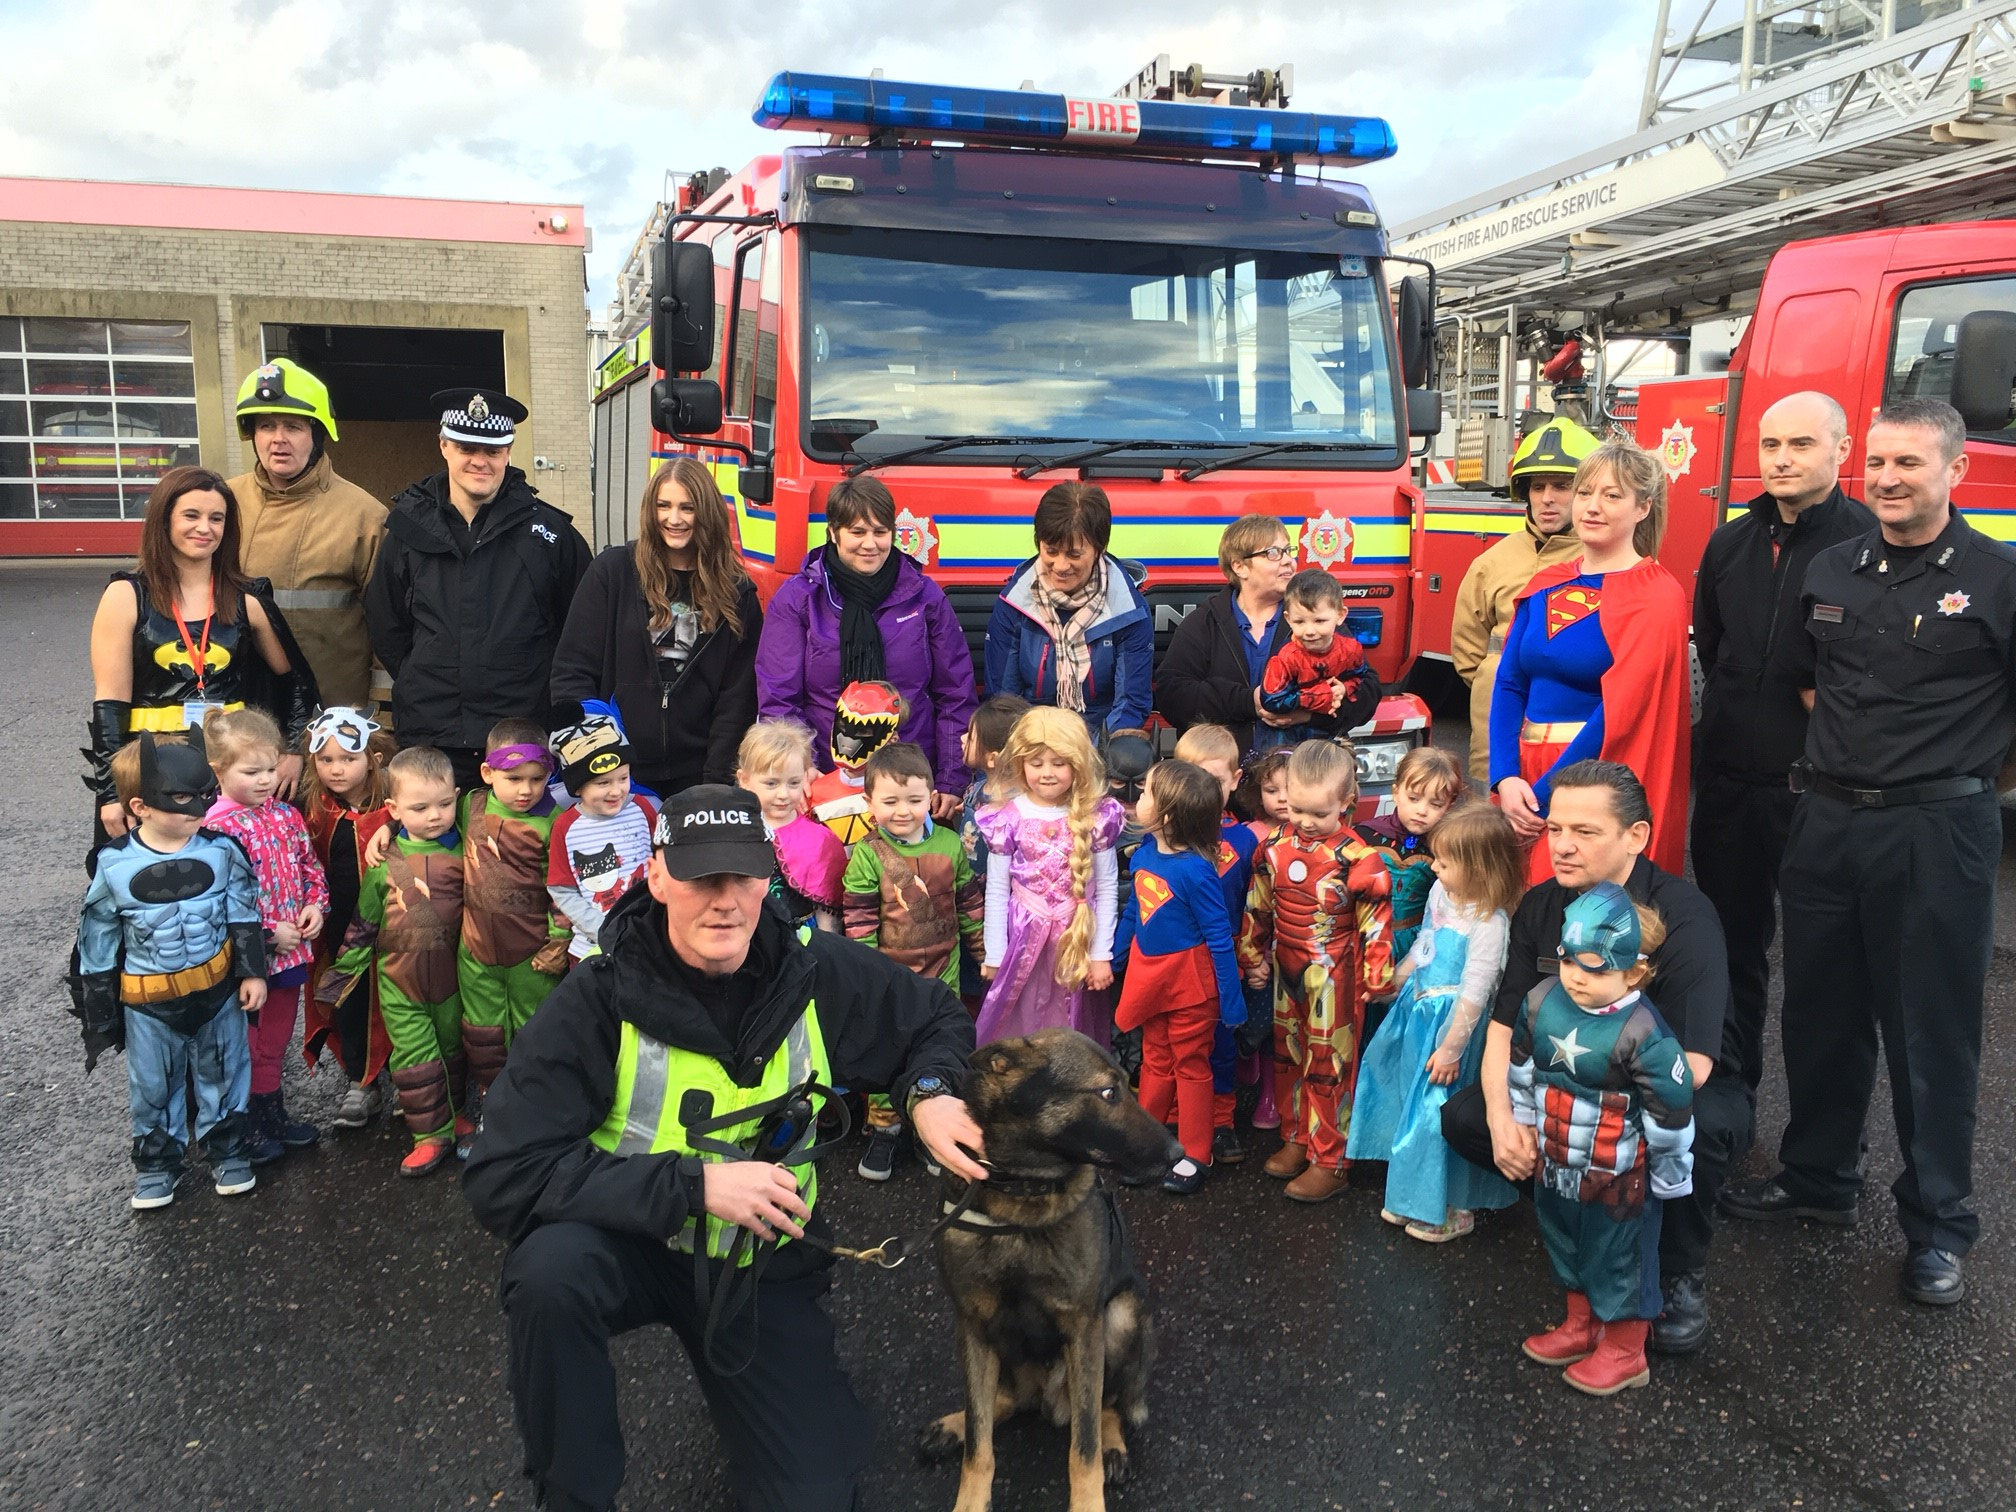 SFRS and Police Scotland support child abuse prevention charity on 'Highland Hero Day'